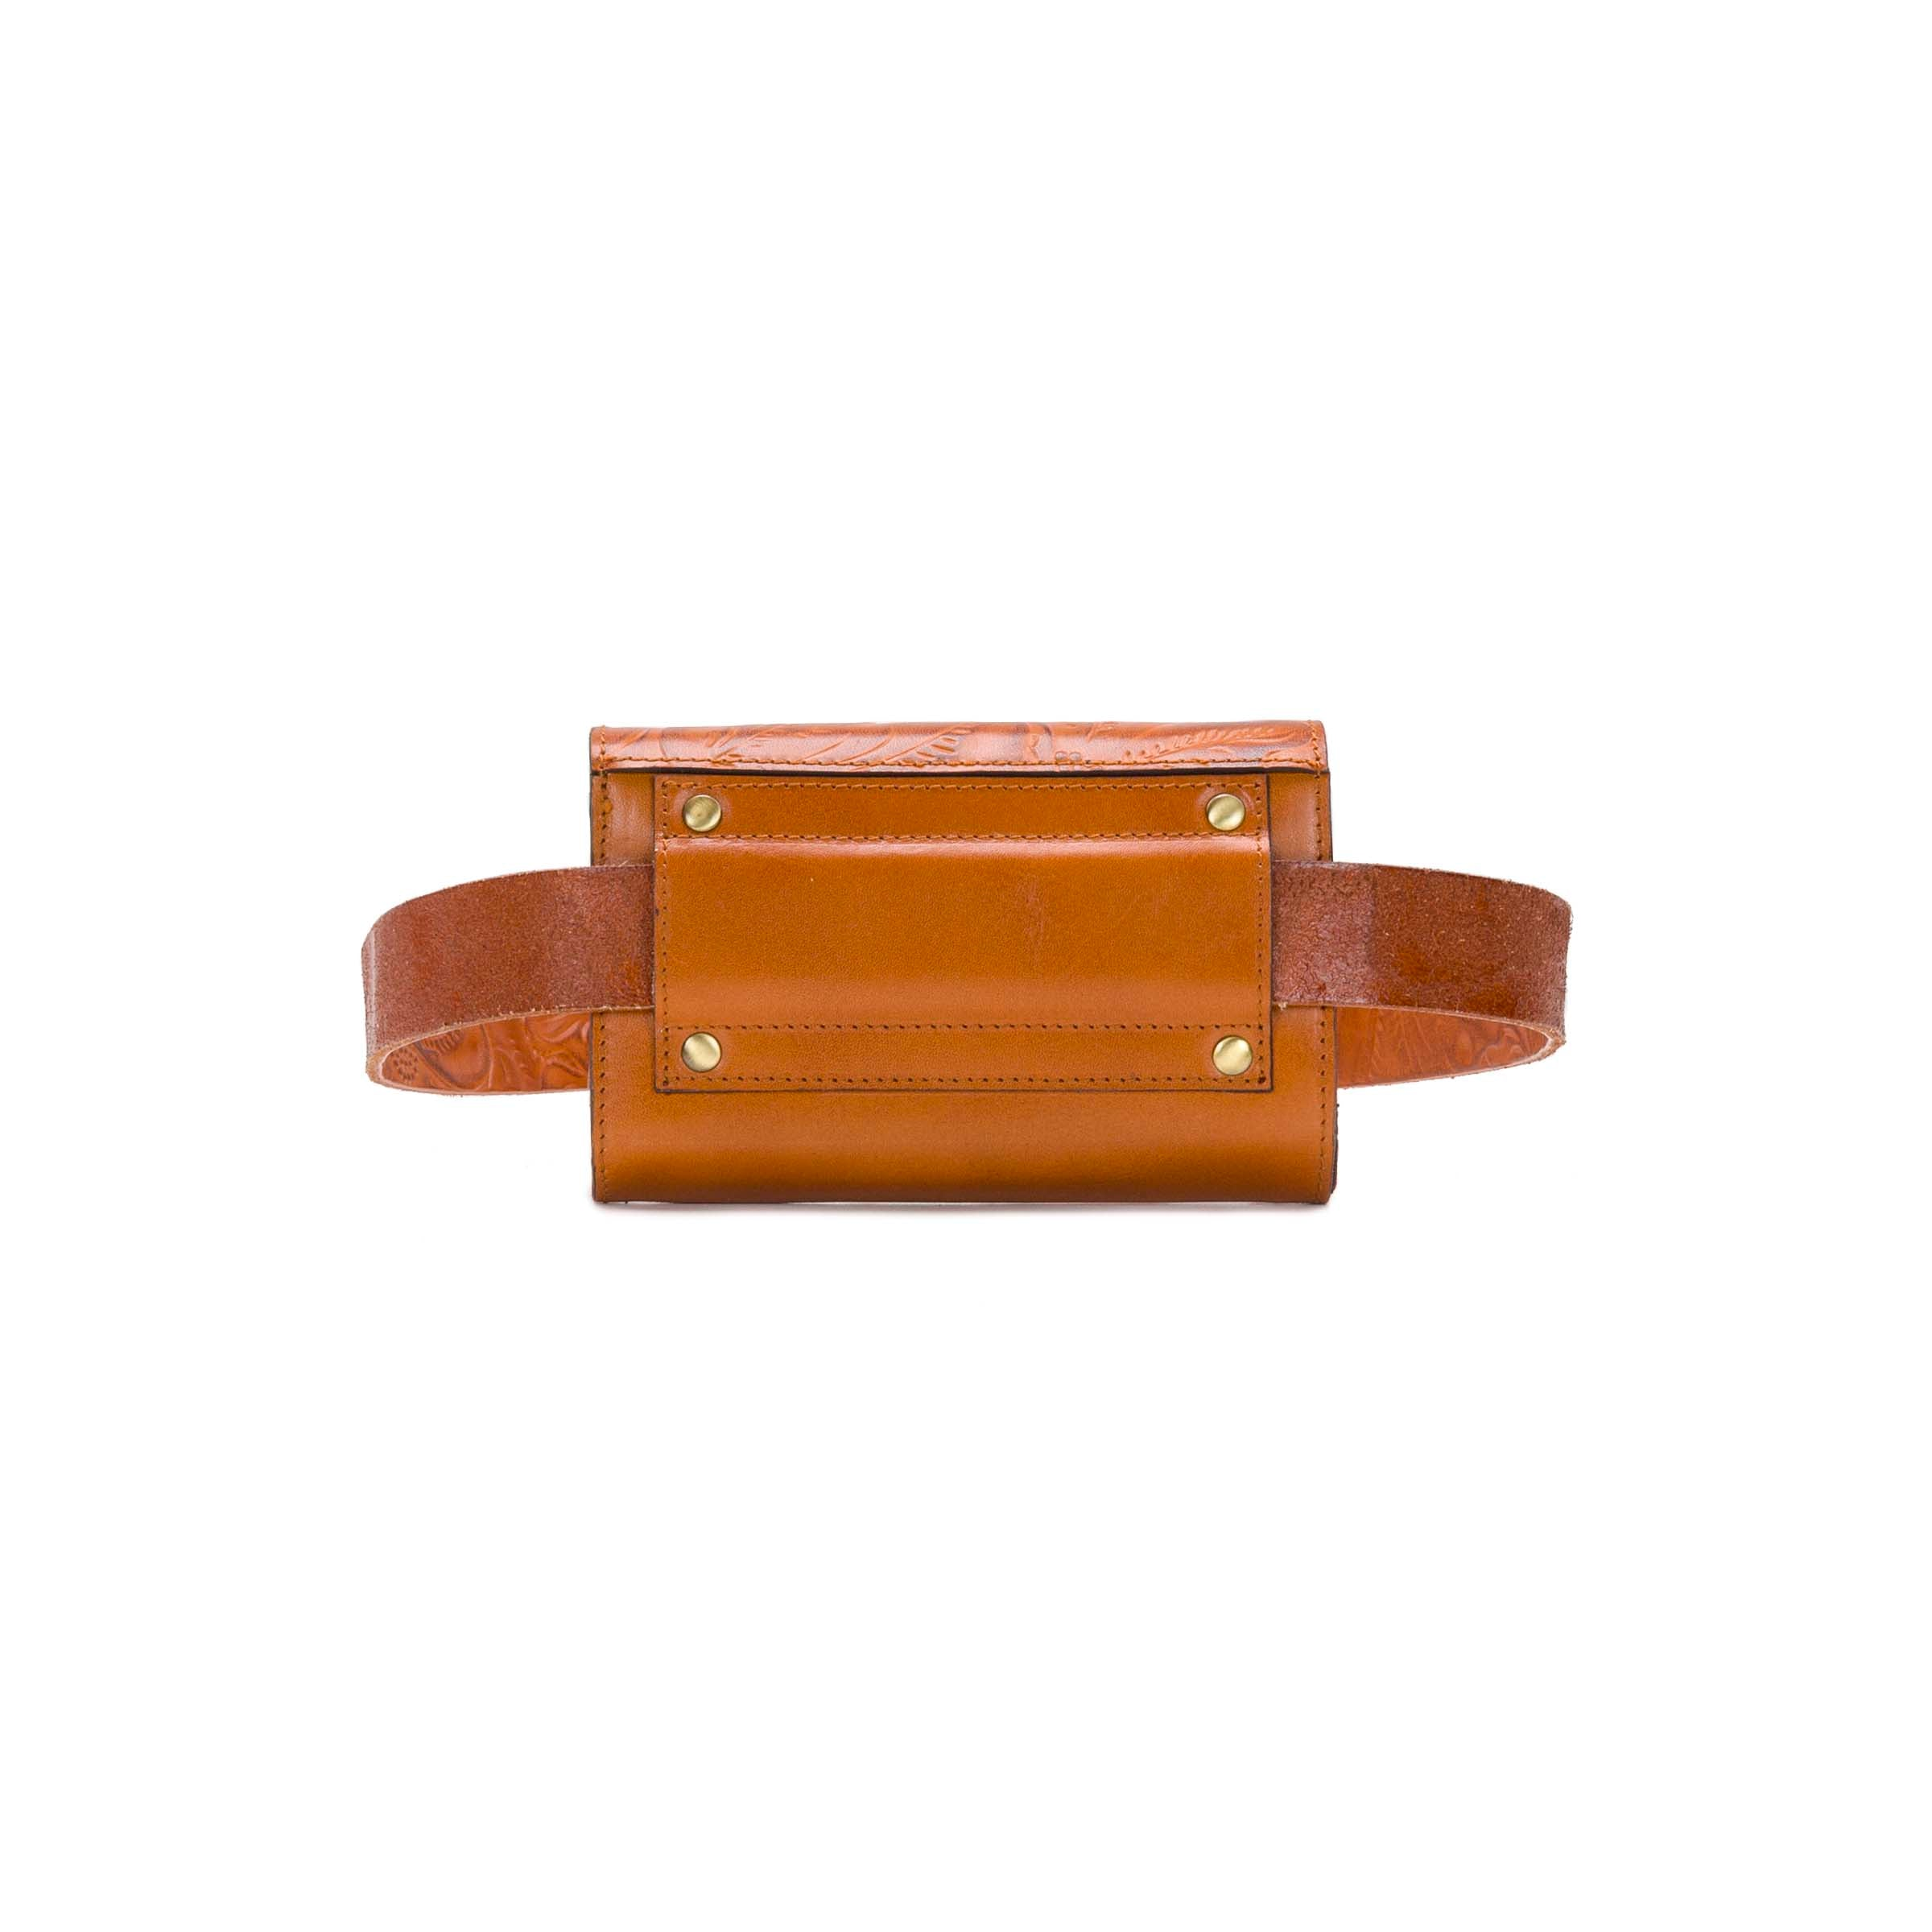 Cavino Belt Bag - Florence 2